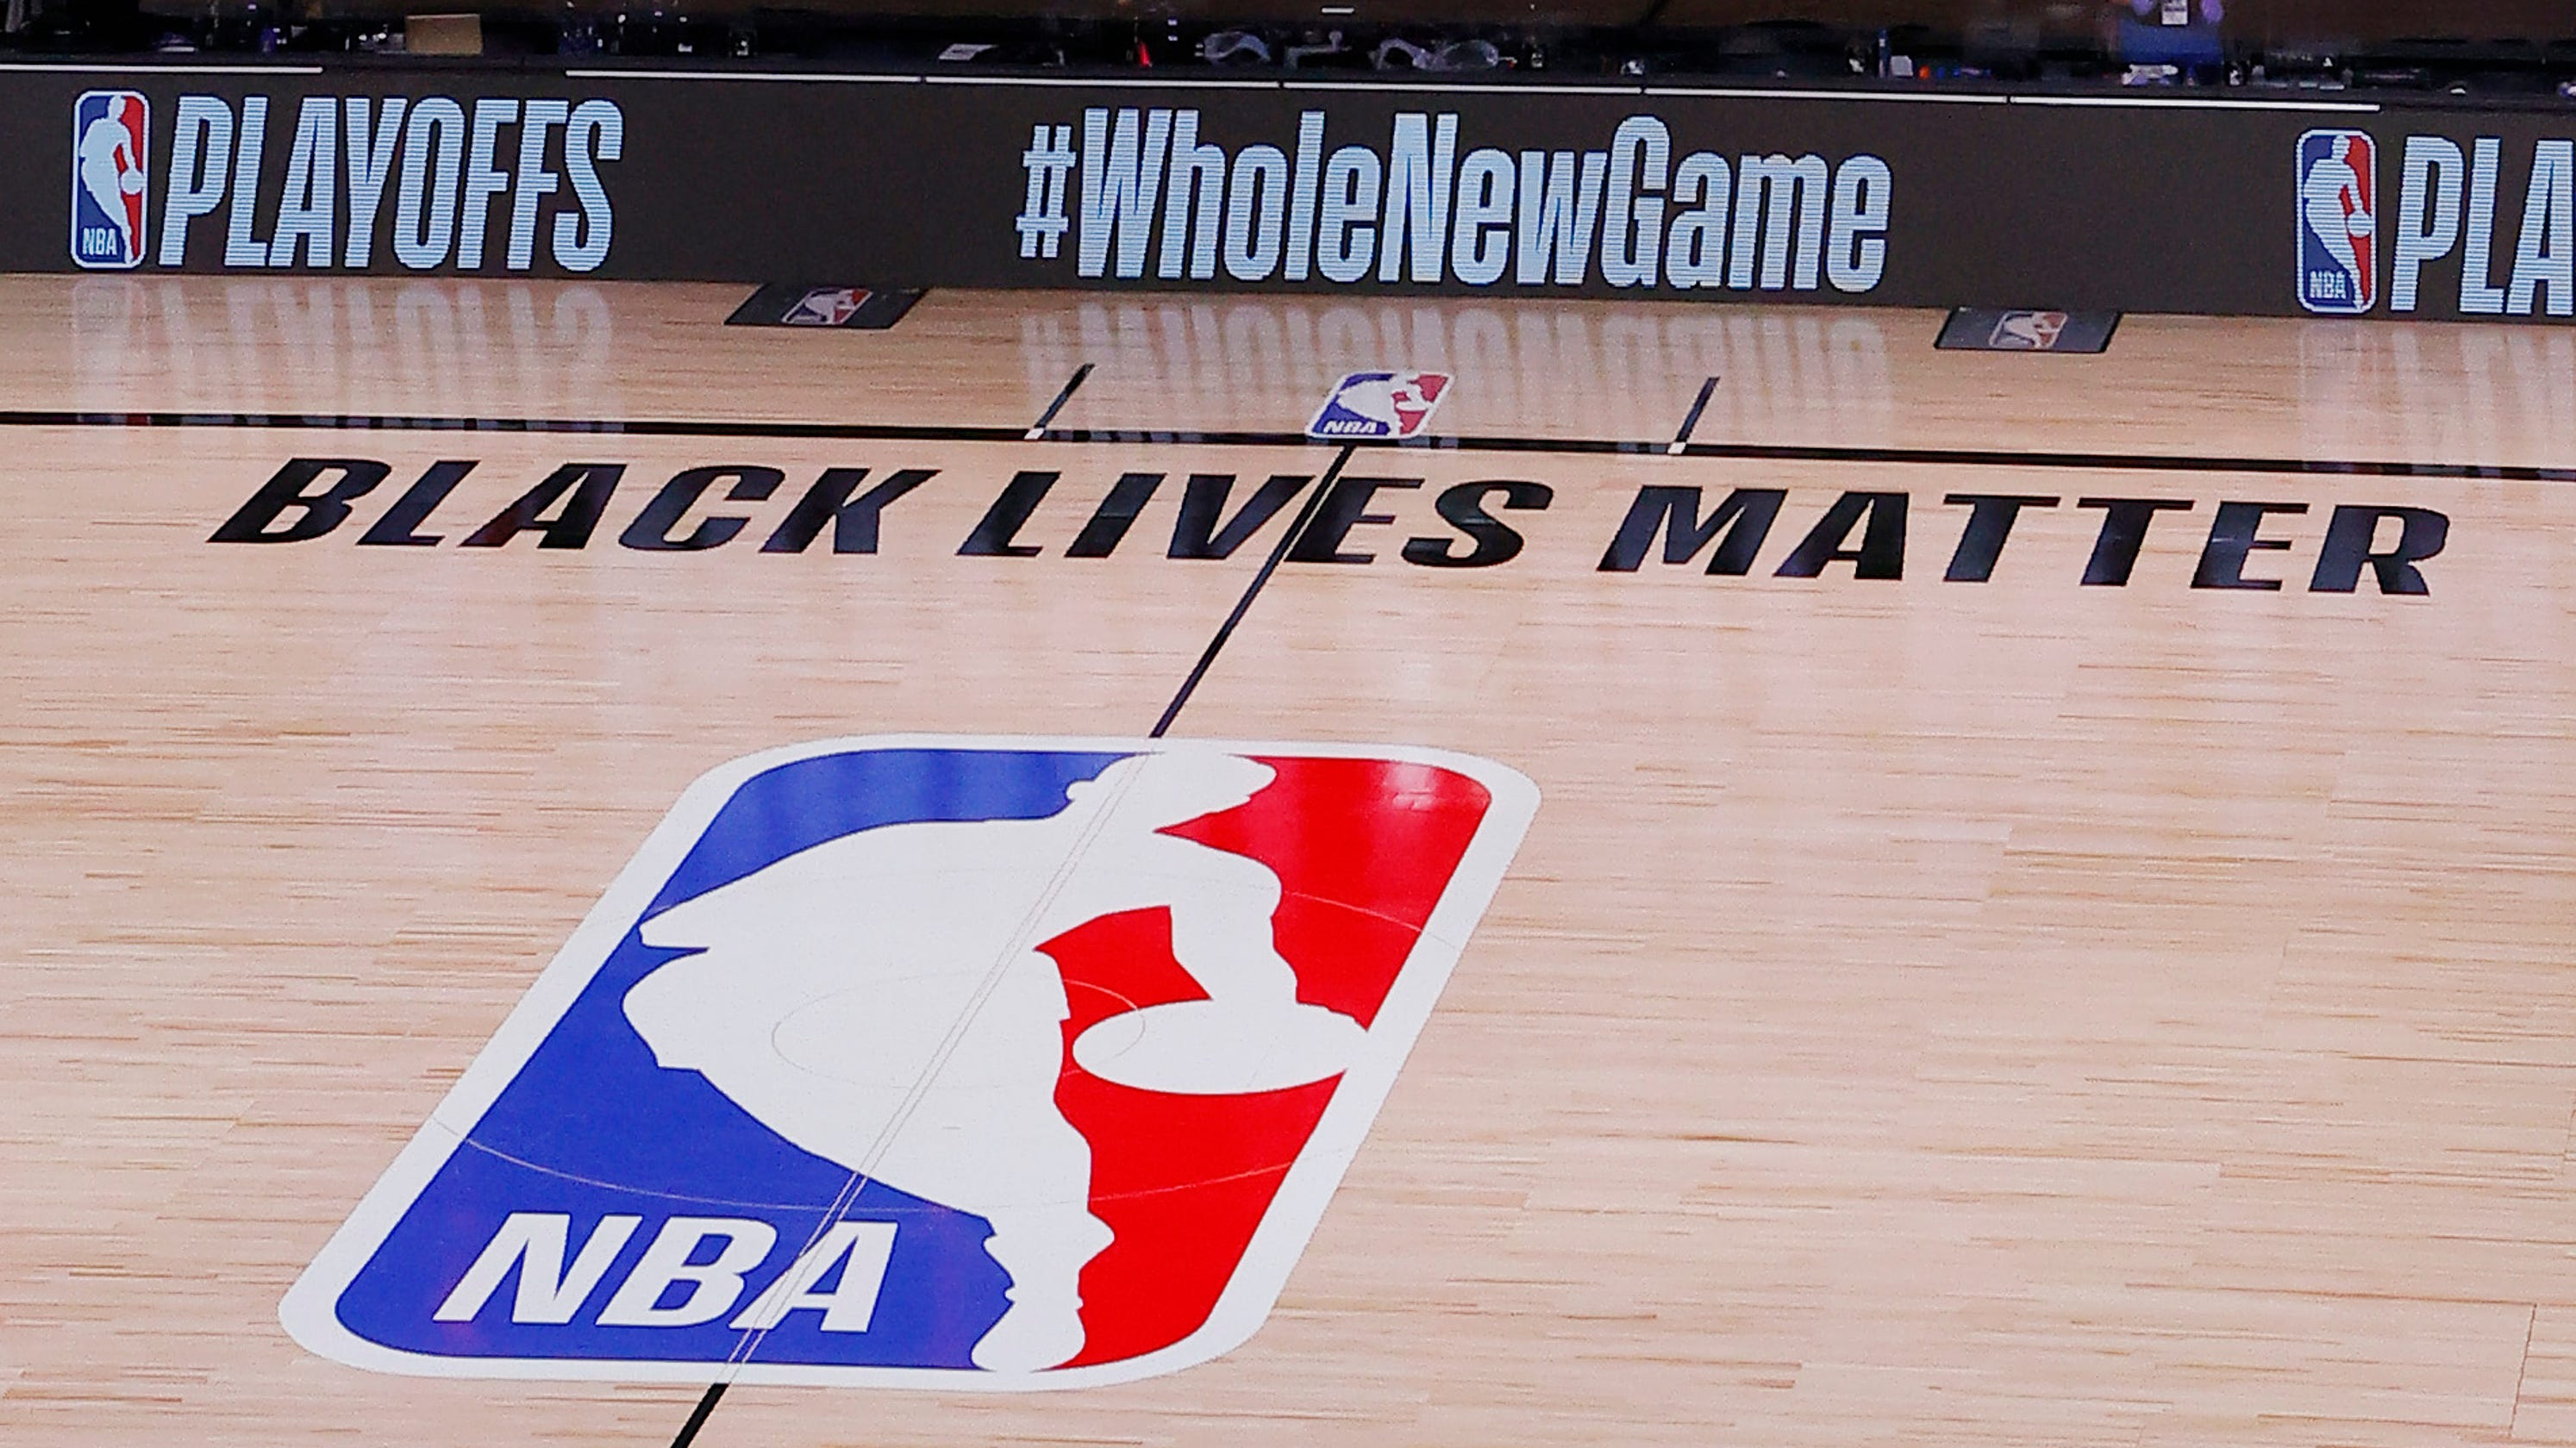 Will NBA protests over social injustice continue next season? Commissioner is uncertain.